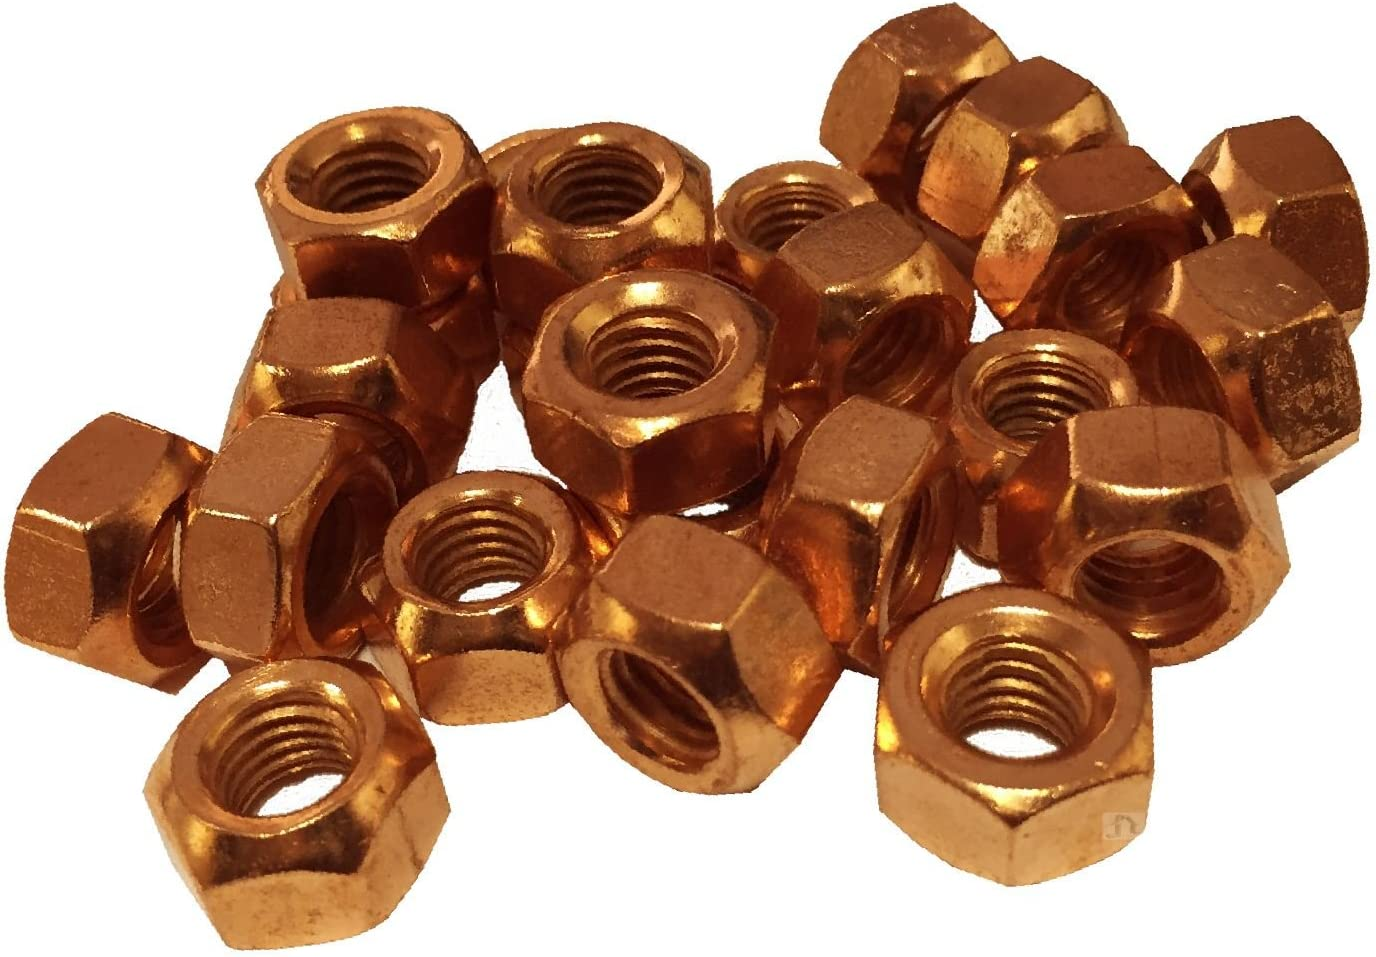 Smart home 4 x Copper Flashed Exhaust Manifold Nuts M10 x 1.5 Pitch High Temperature